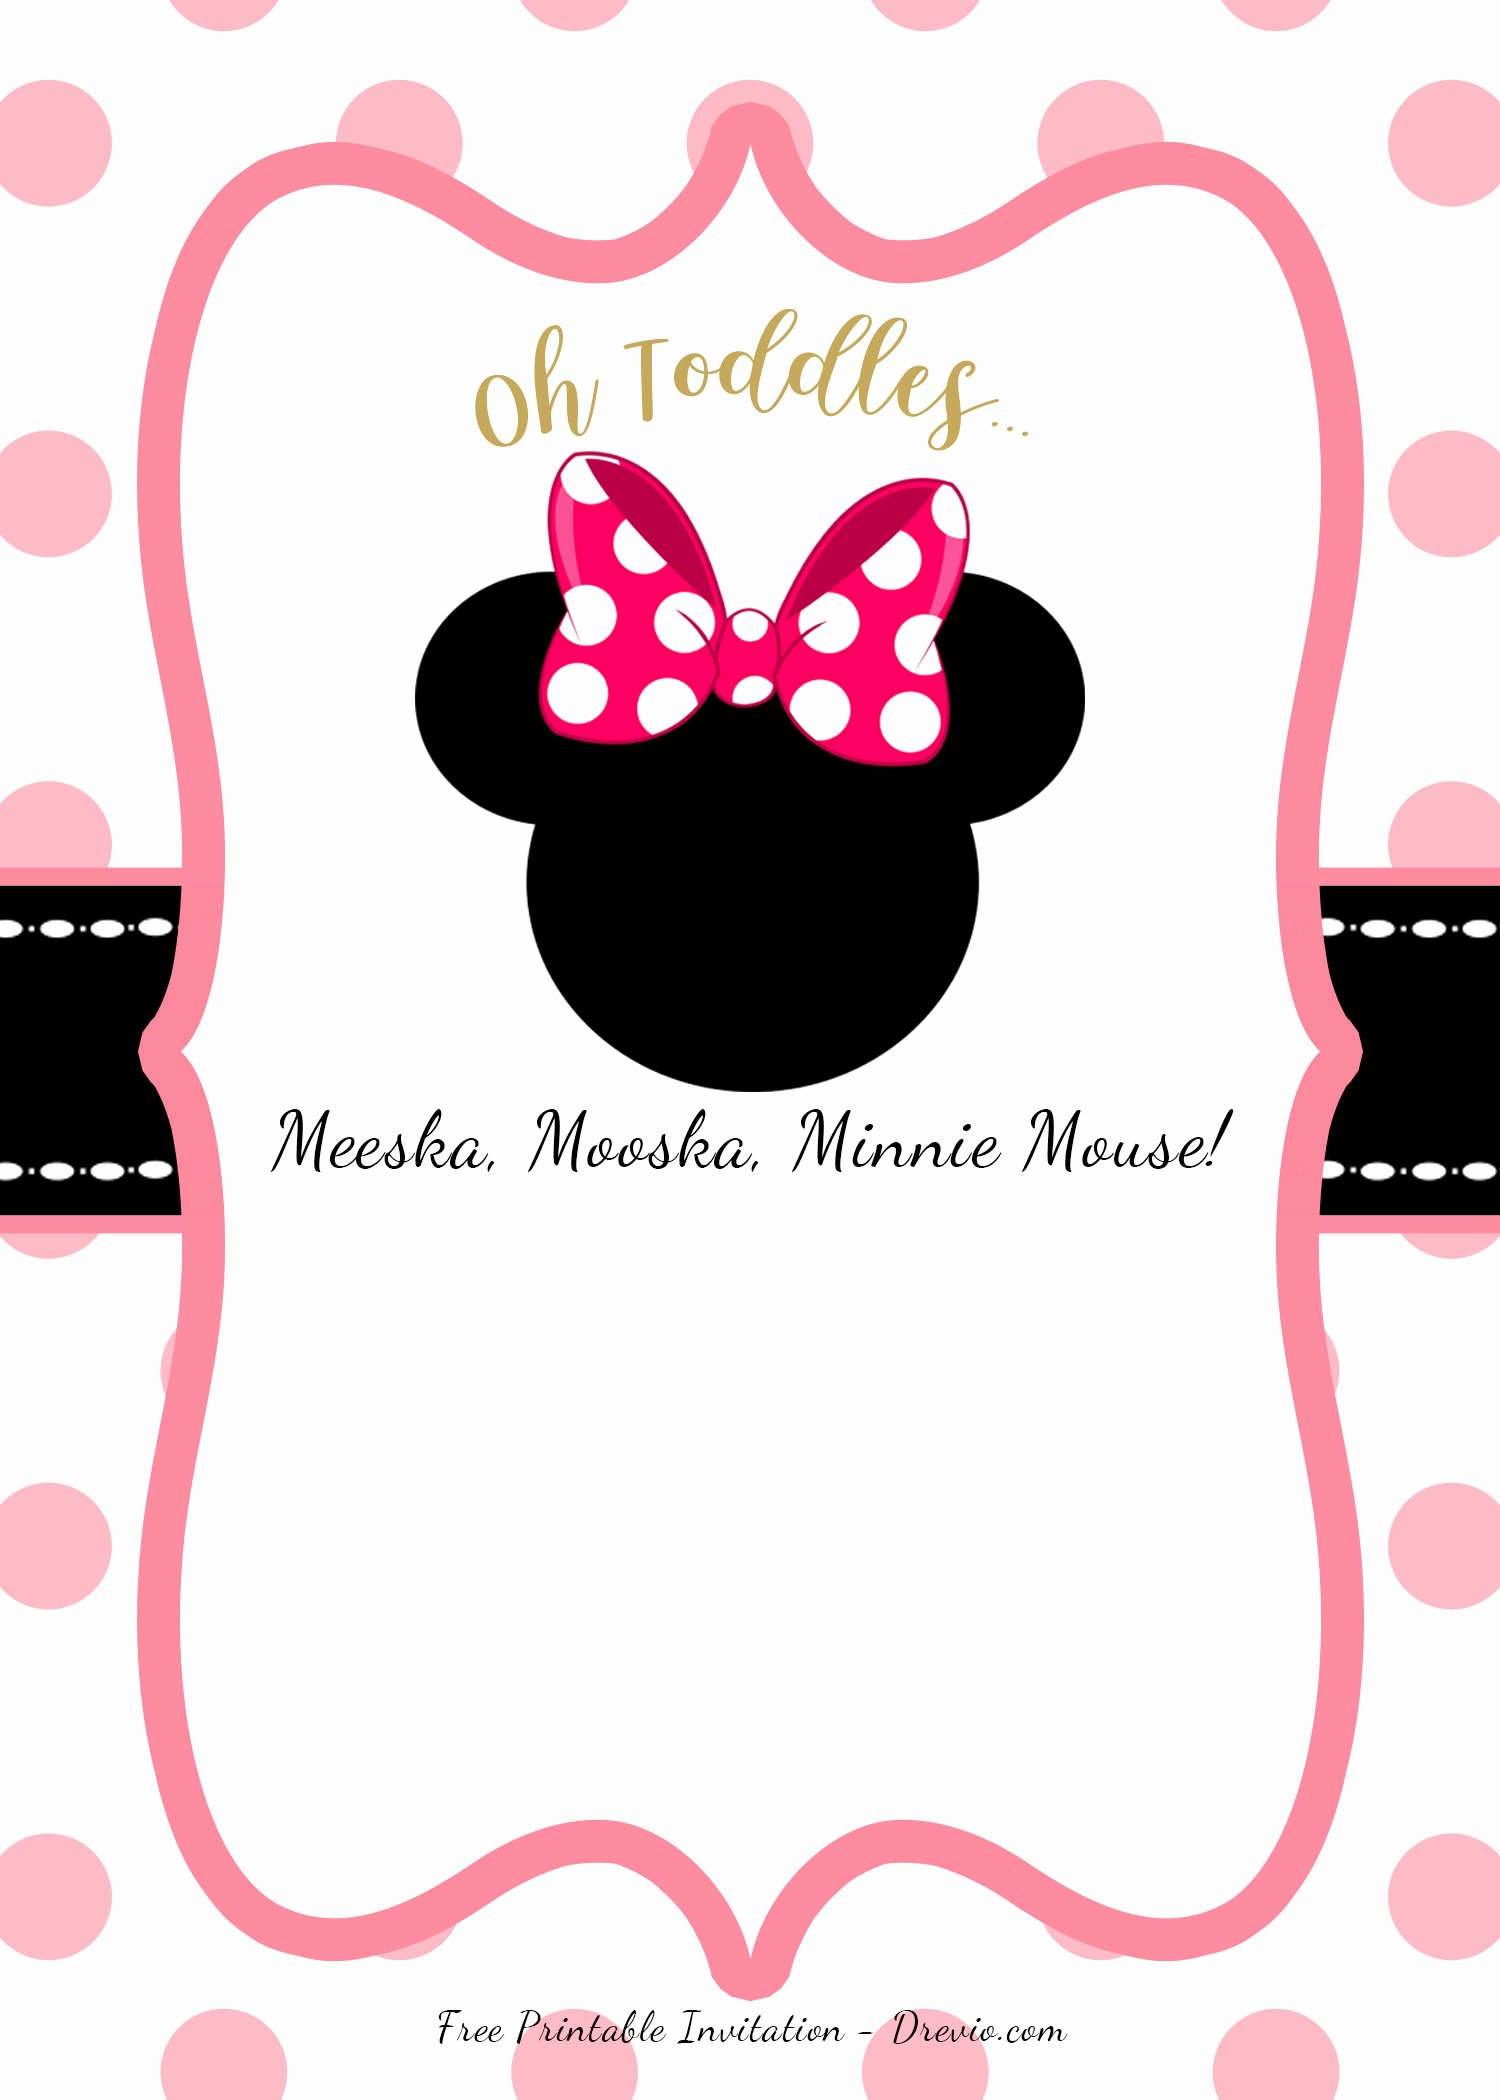 Minnie Mouse Invitation Template Beautiful Free Pink Minnie Mouse Birthday Party Diy Printable